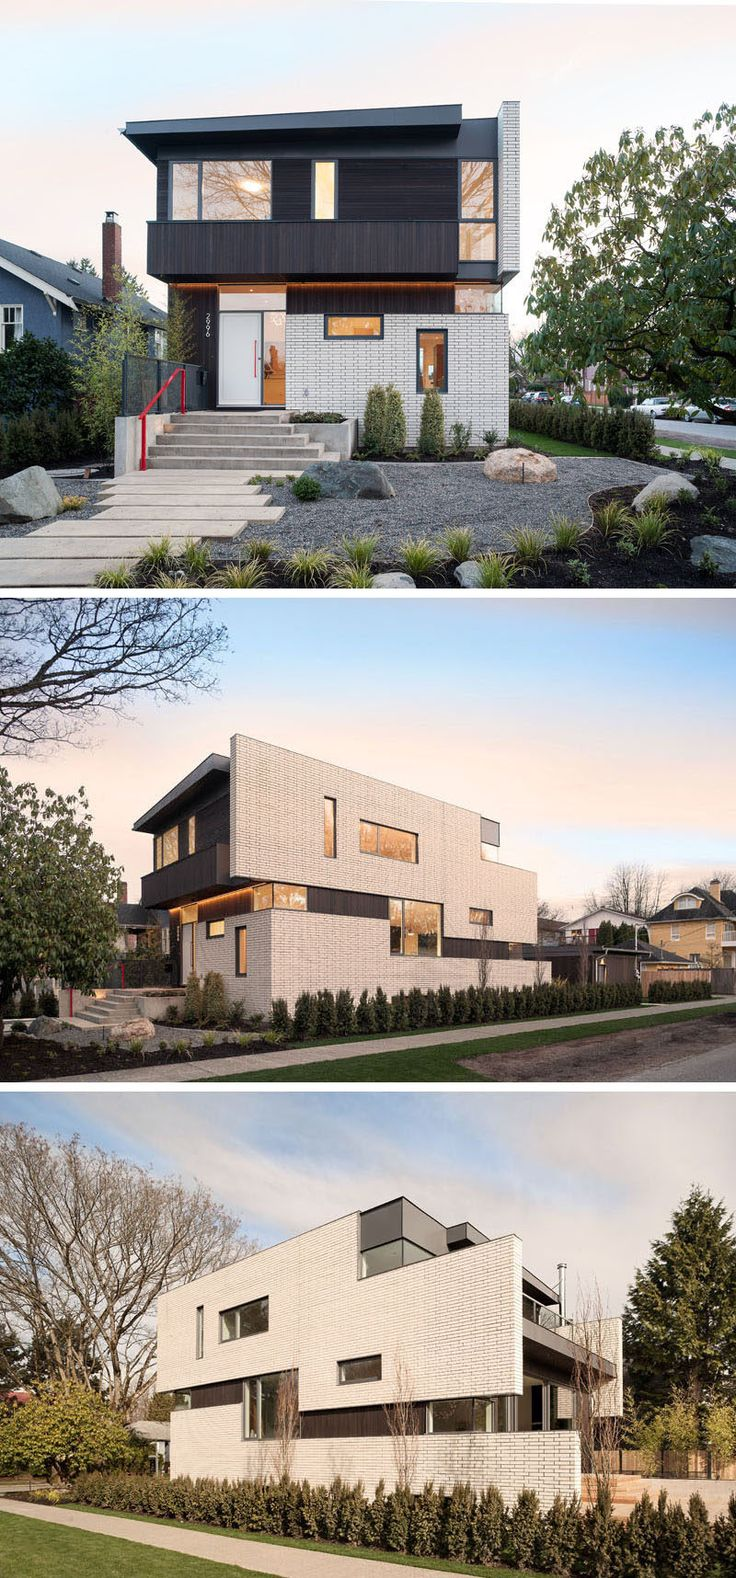 14 Modern Houses Made Of Brick // White bricks cover much of the exterior of this home and contrast the dark cedar siding and metal trim also included in the exterior design.